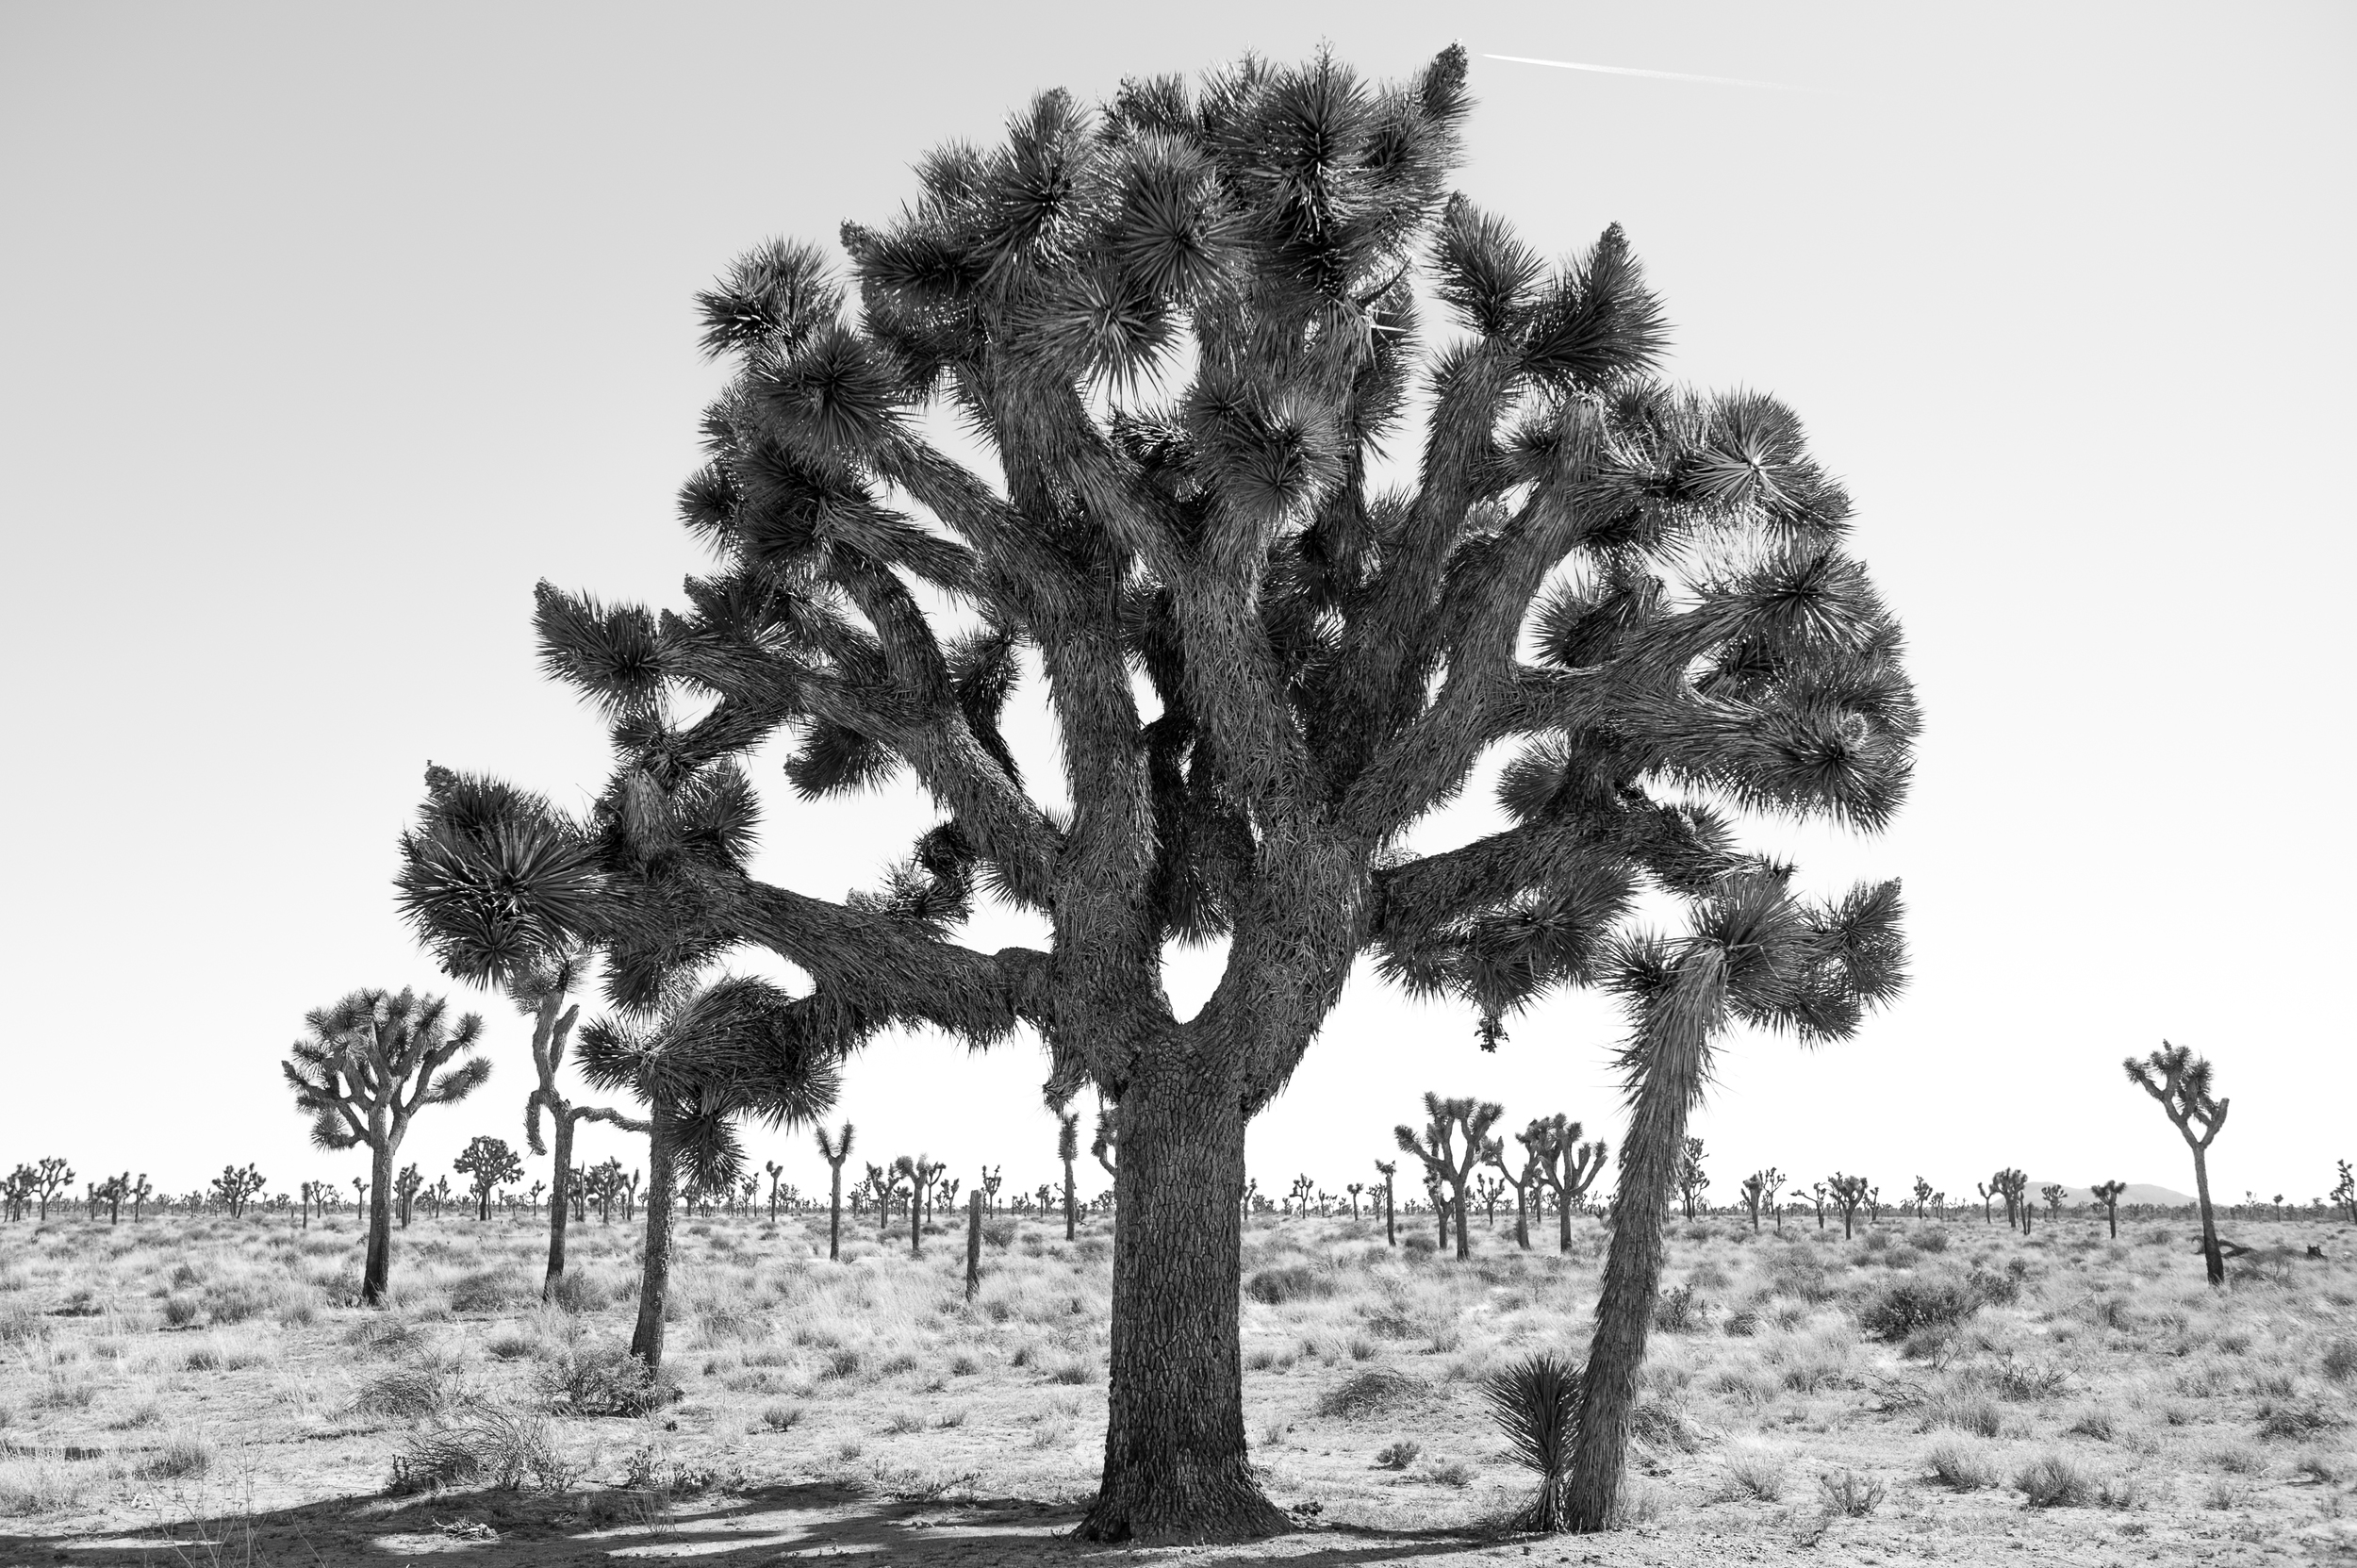 // JOSHUA TREE - March 28, 2016